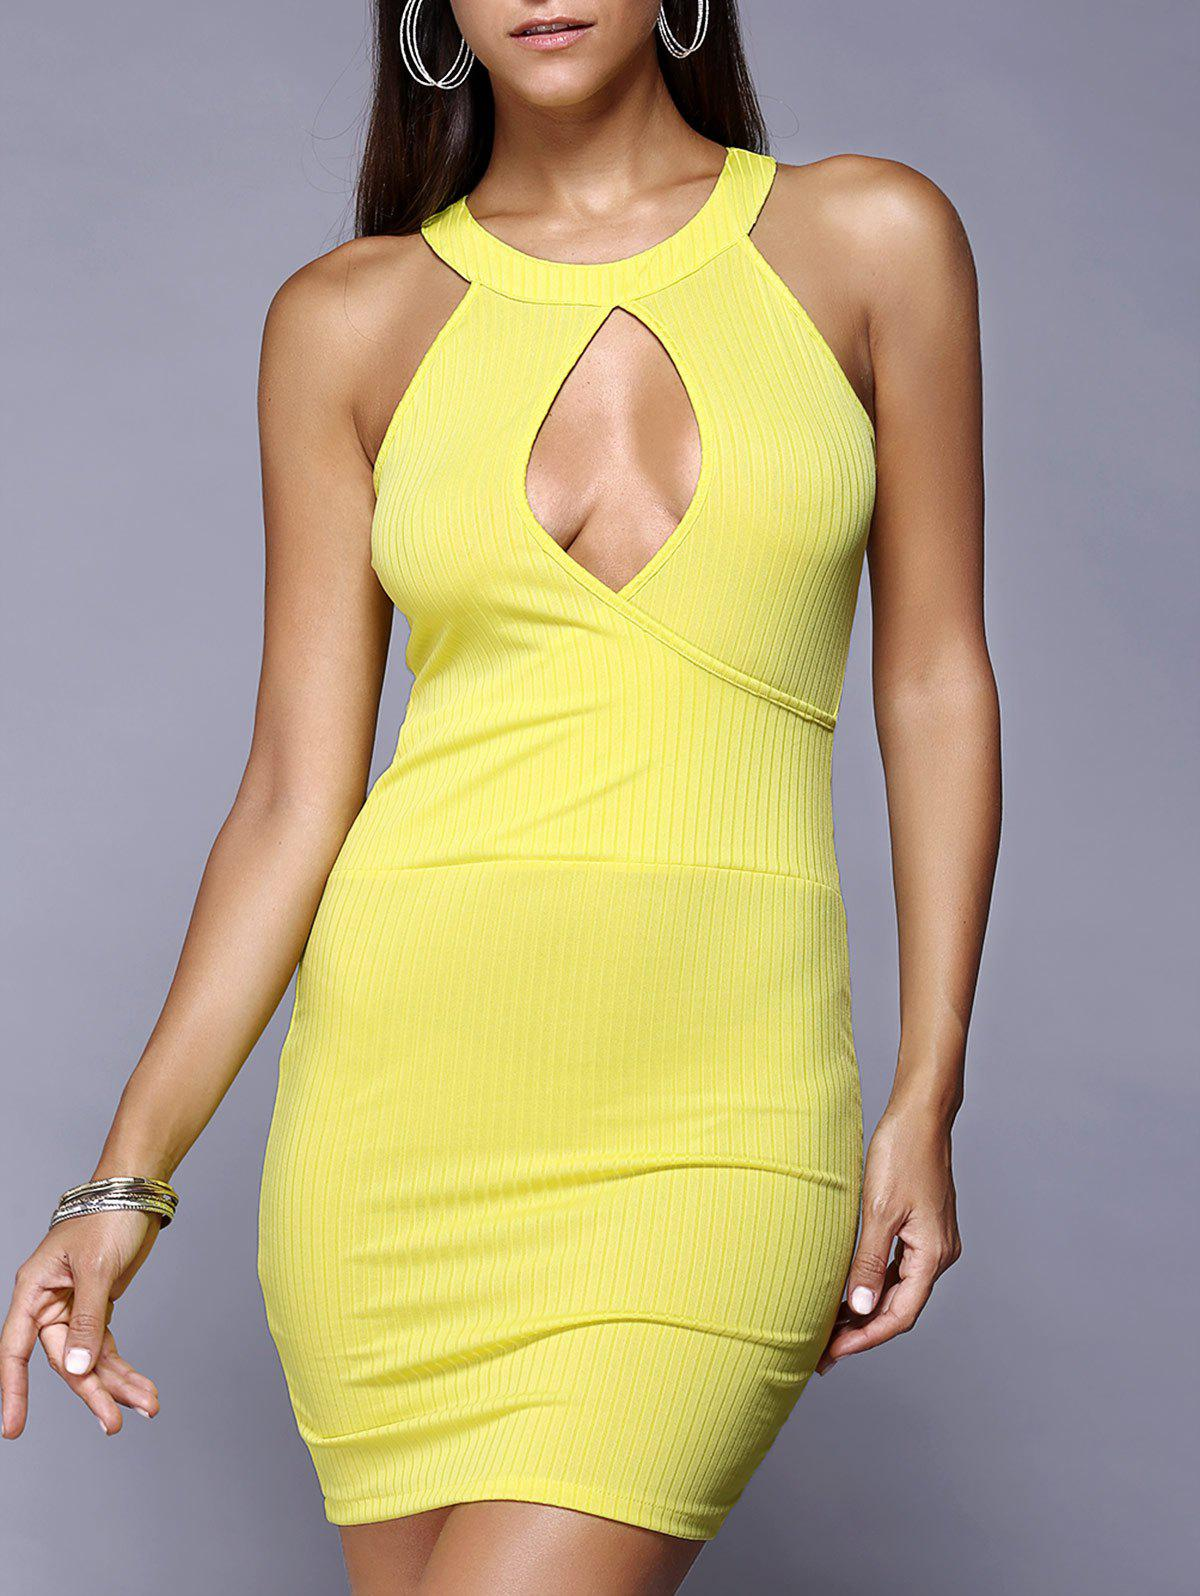 Keyhole Mini Night Out Bodycon Club Dress - LEMON YELLOW L